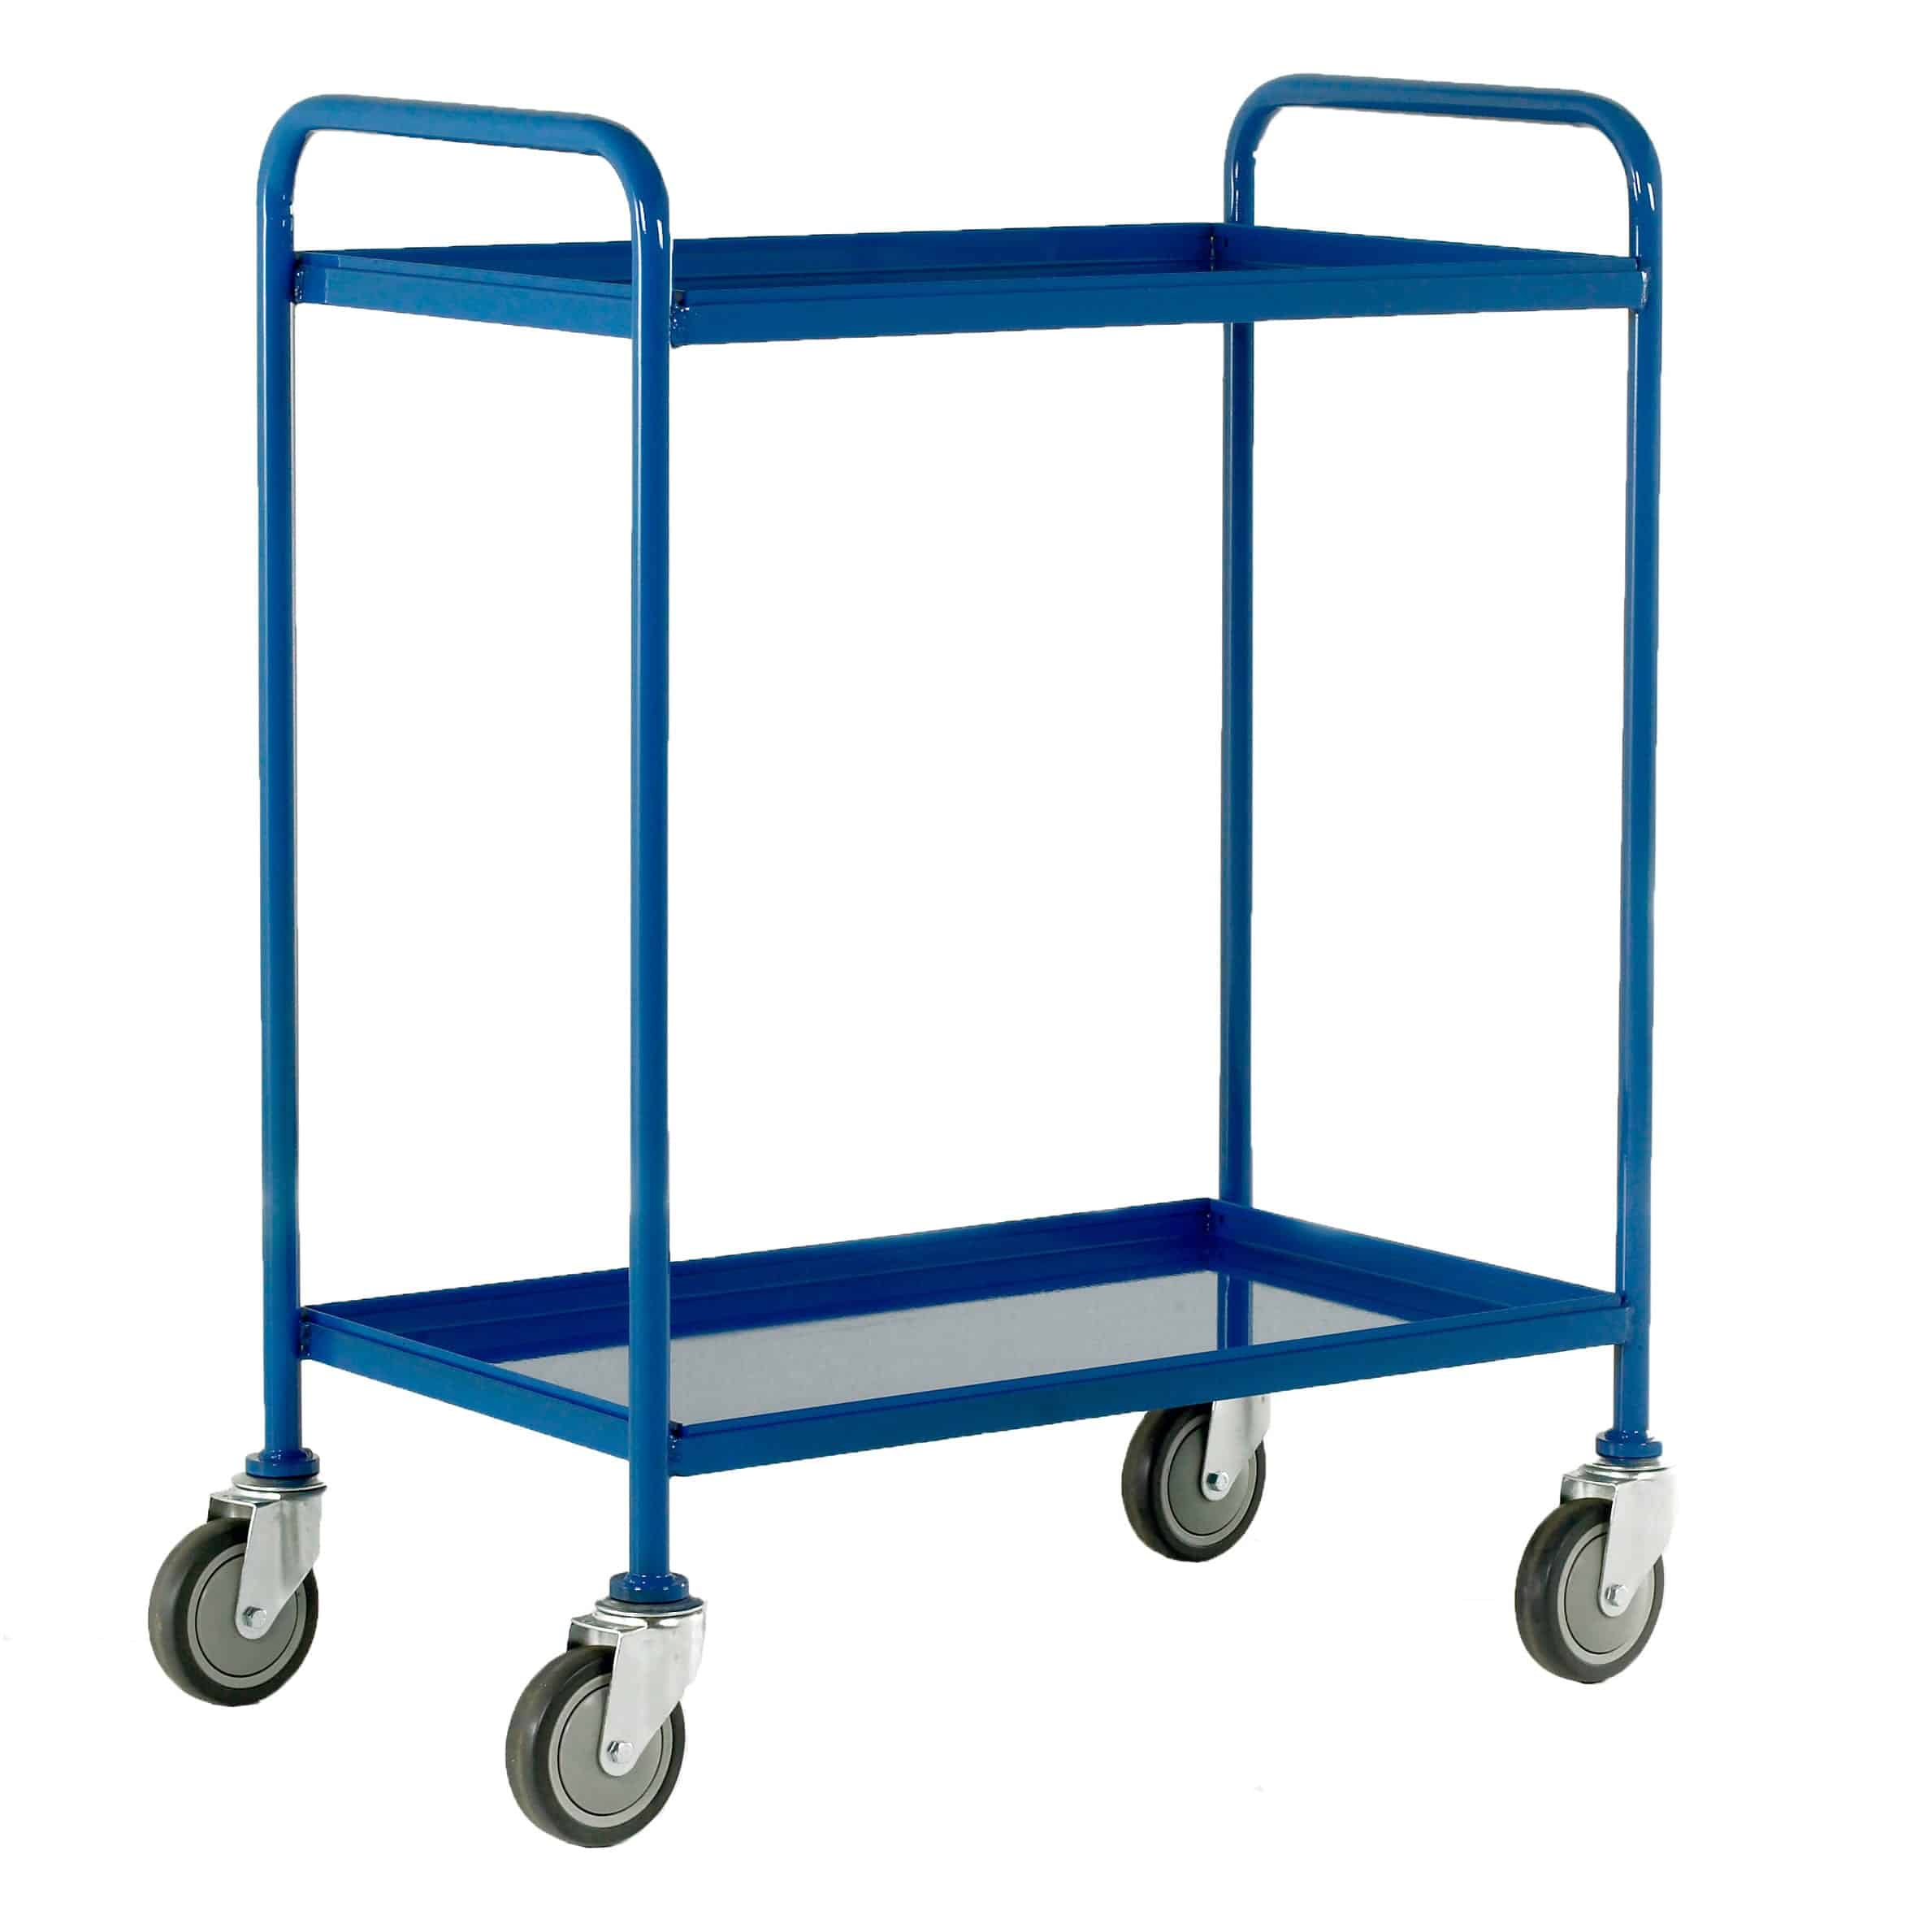 Removable 2 Tray Steel Tray Trolleys